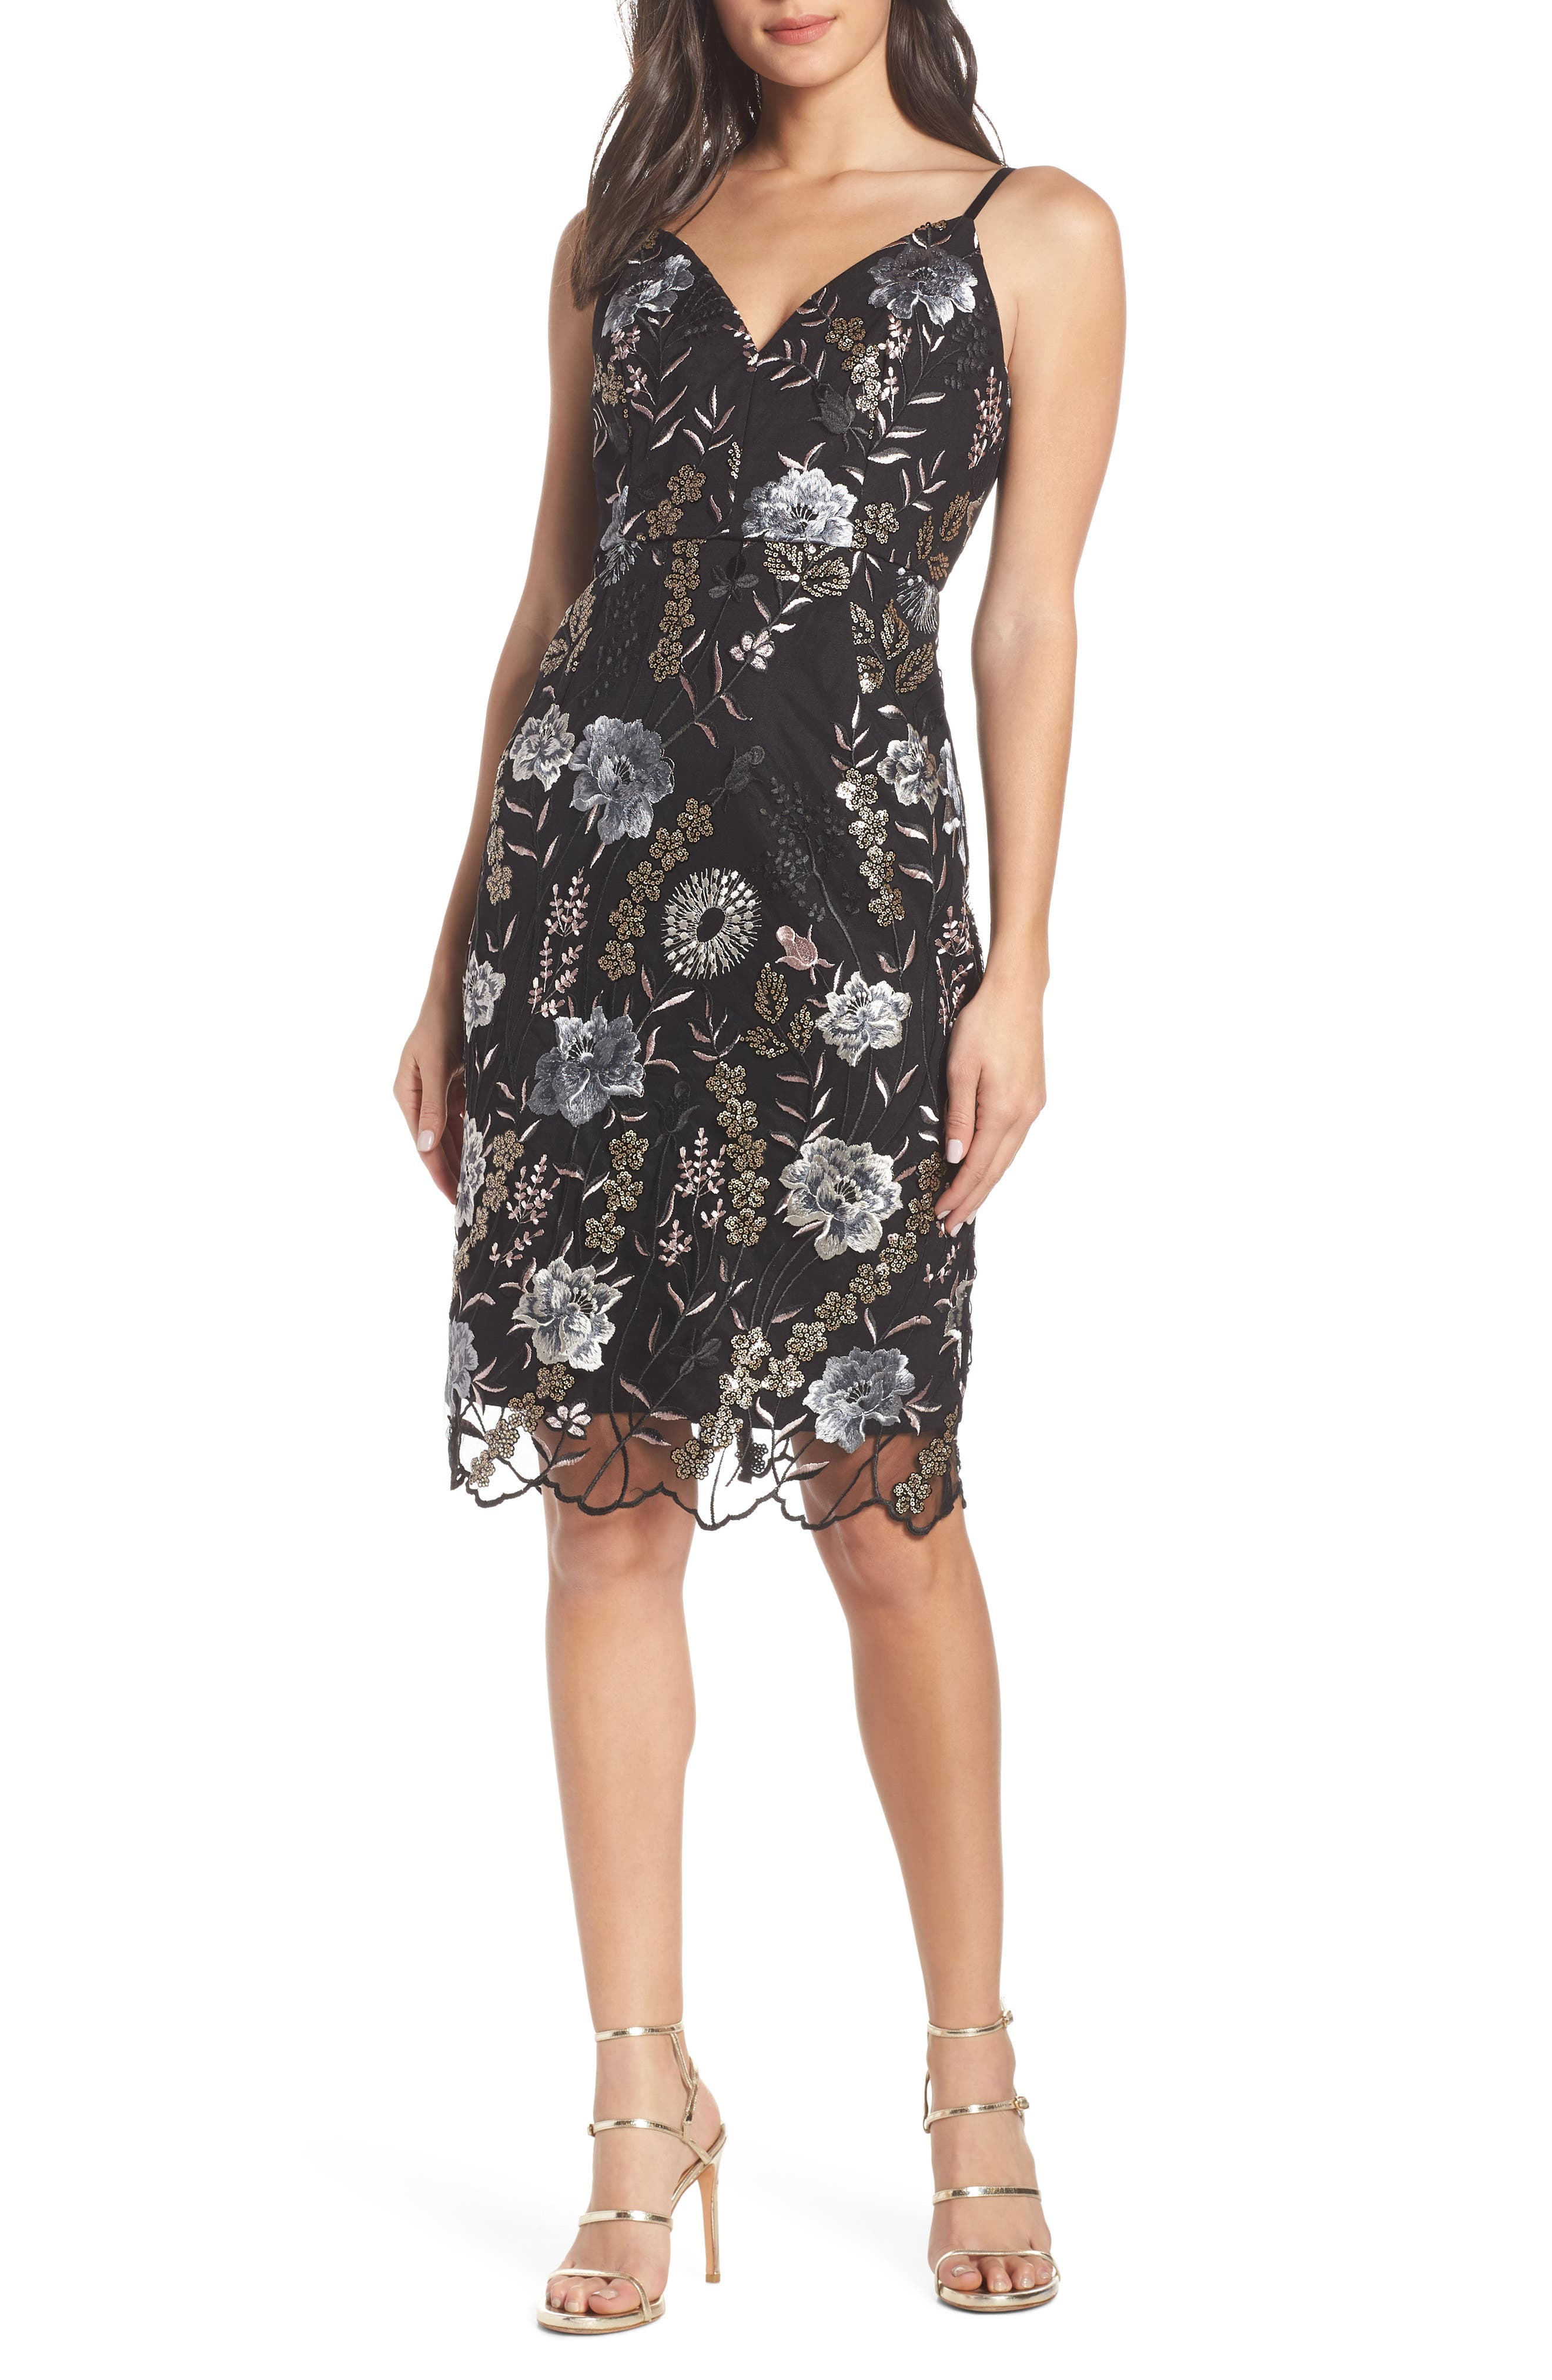 BRONX AND BANCO Tiara Flower Embroidered Evening Dress in Black